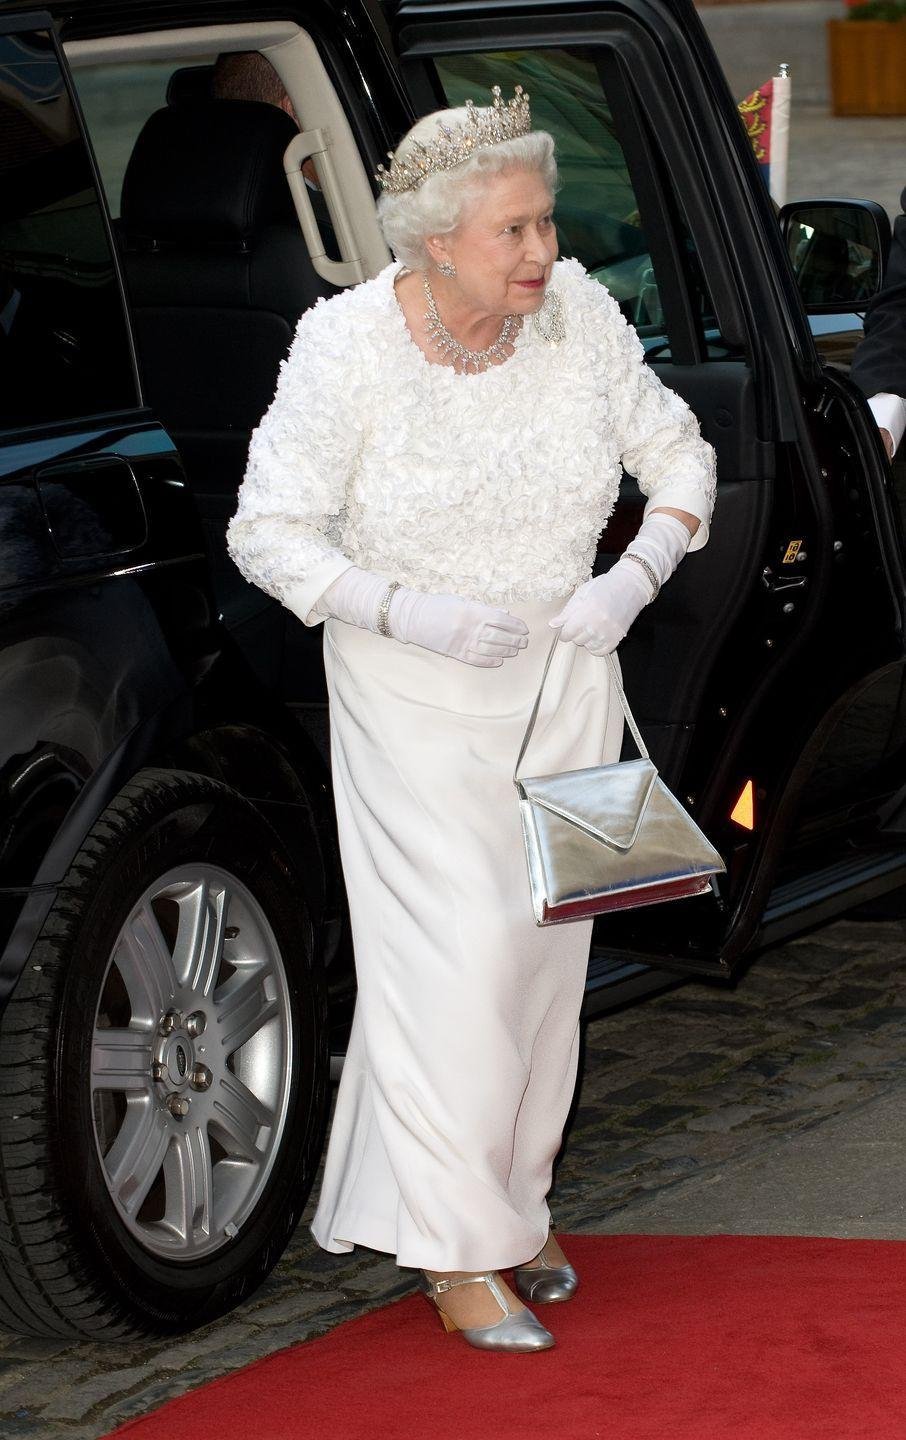 "<p>The Queen paid tribute to her host country while on a royal visit to Ireland. <a href=""https://www.royalcollection.org.uk/collection/themes/exhibitions/fashioning-a-reign/windsor-castle/evening-dress-9?language=en"" rel=""nofollow noopener"" target=""_blank"" data-ylk=""slk:The white evening dress"" class=""link rapid-noclick-resp"">The white evening dress</a> was embellished with chiffon shamrocks, the national emblem of Ireland.</p>"